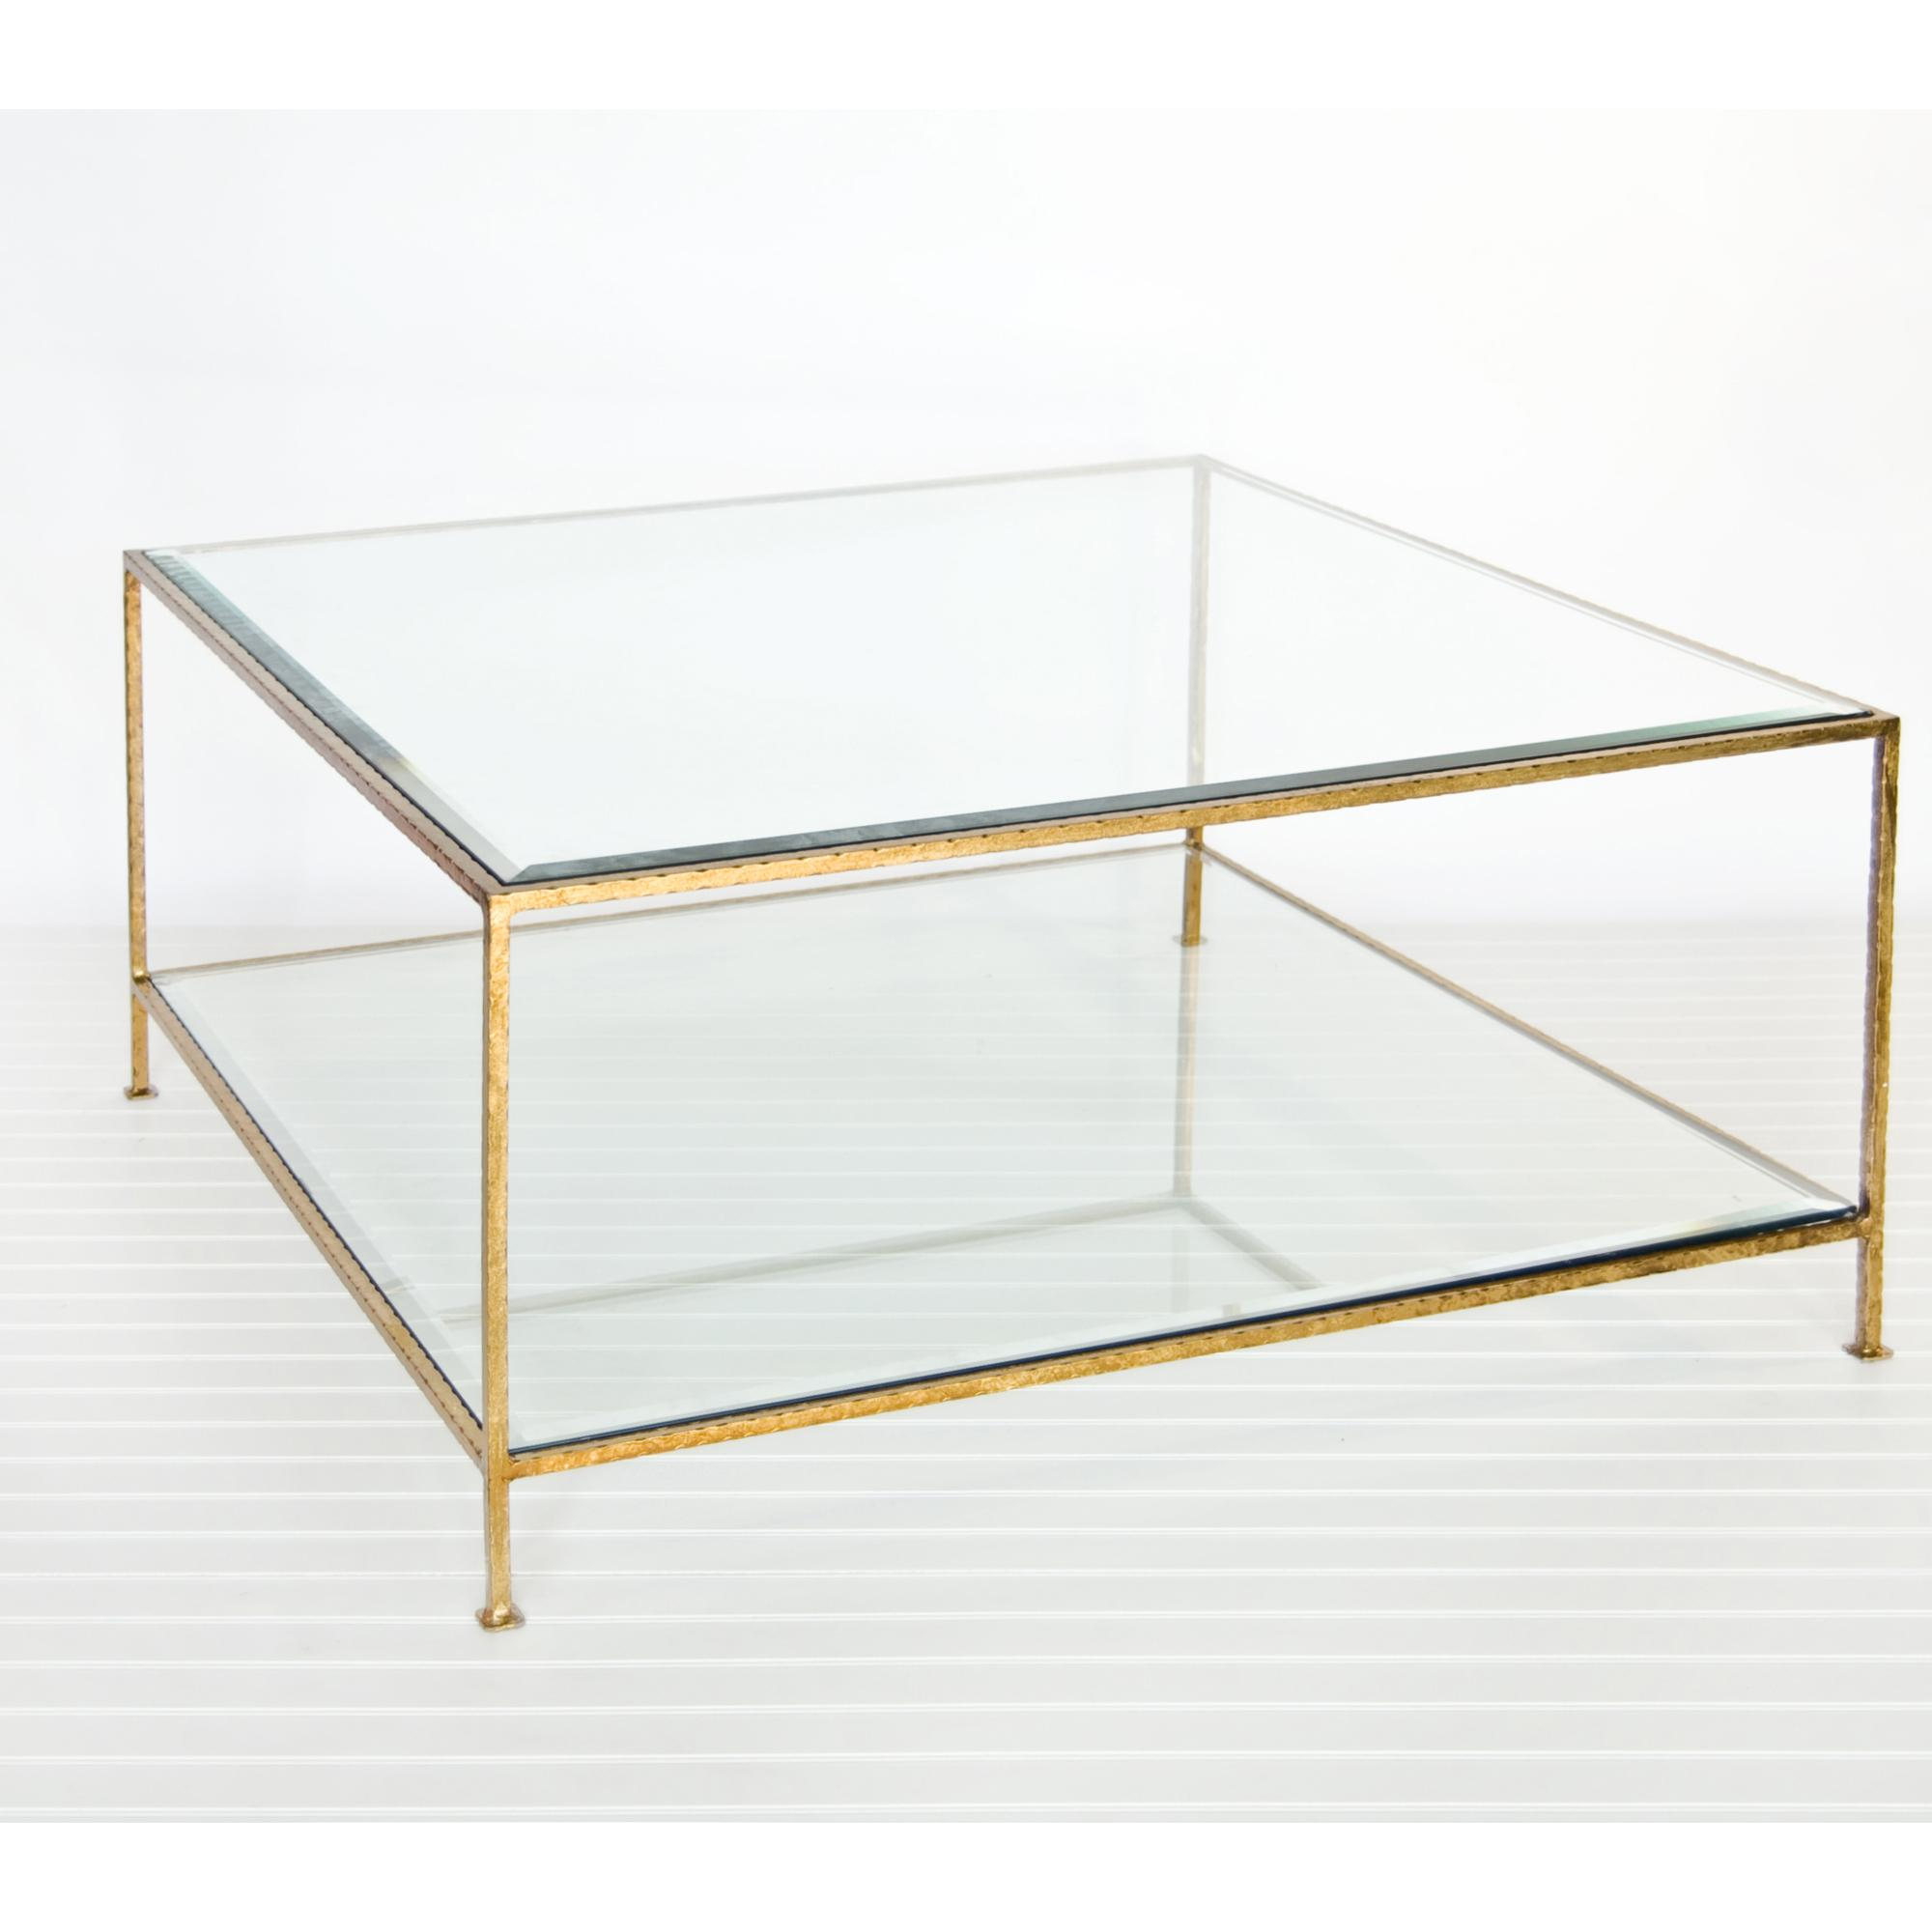 Square Glass Coffee Tables Round Wood Coffee Table With Glass Top Hom Furniture (Photo 9 of 10)